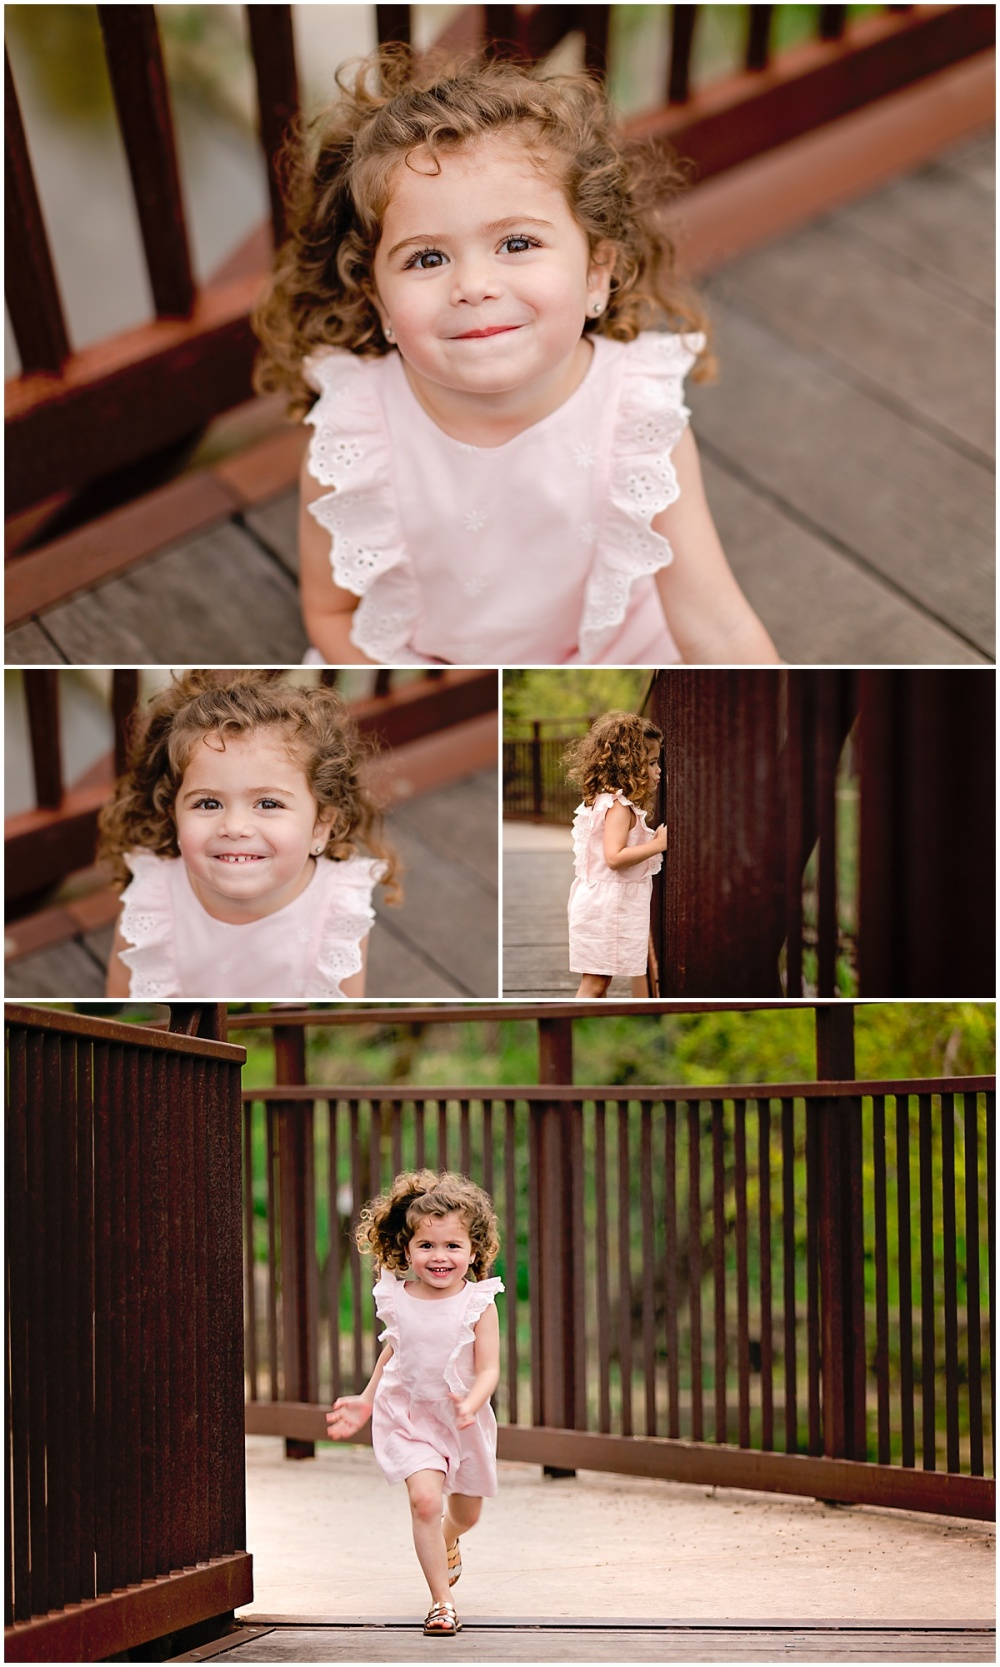 Family-Children-Birthday-Portraits-San-Antonio-Hill-Country-Texas-Carly-Barton-Photography_0005.jpg